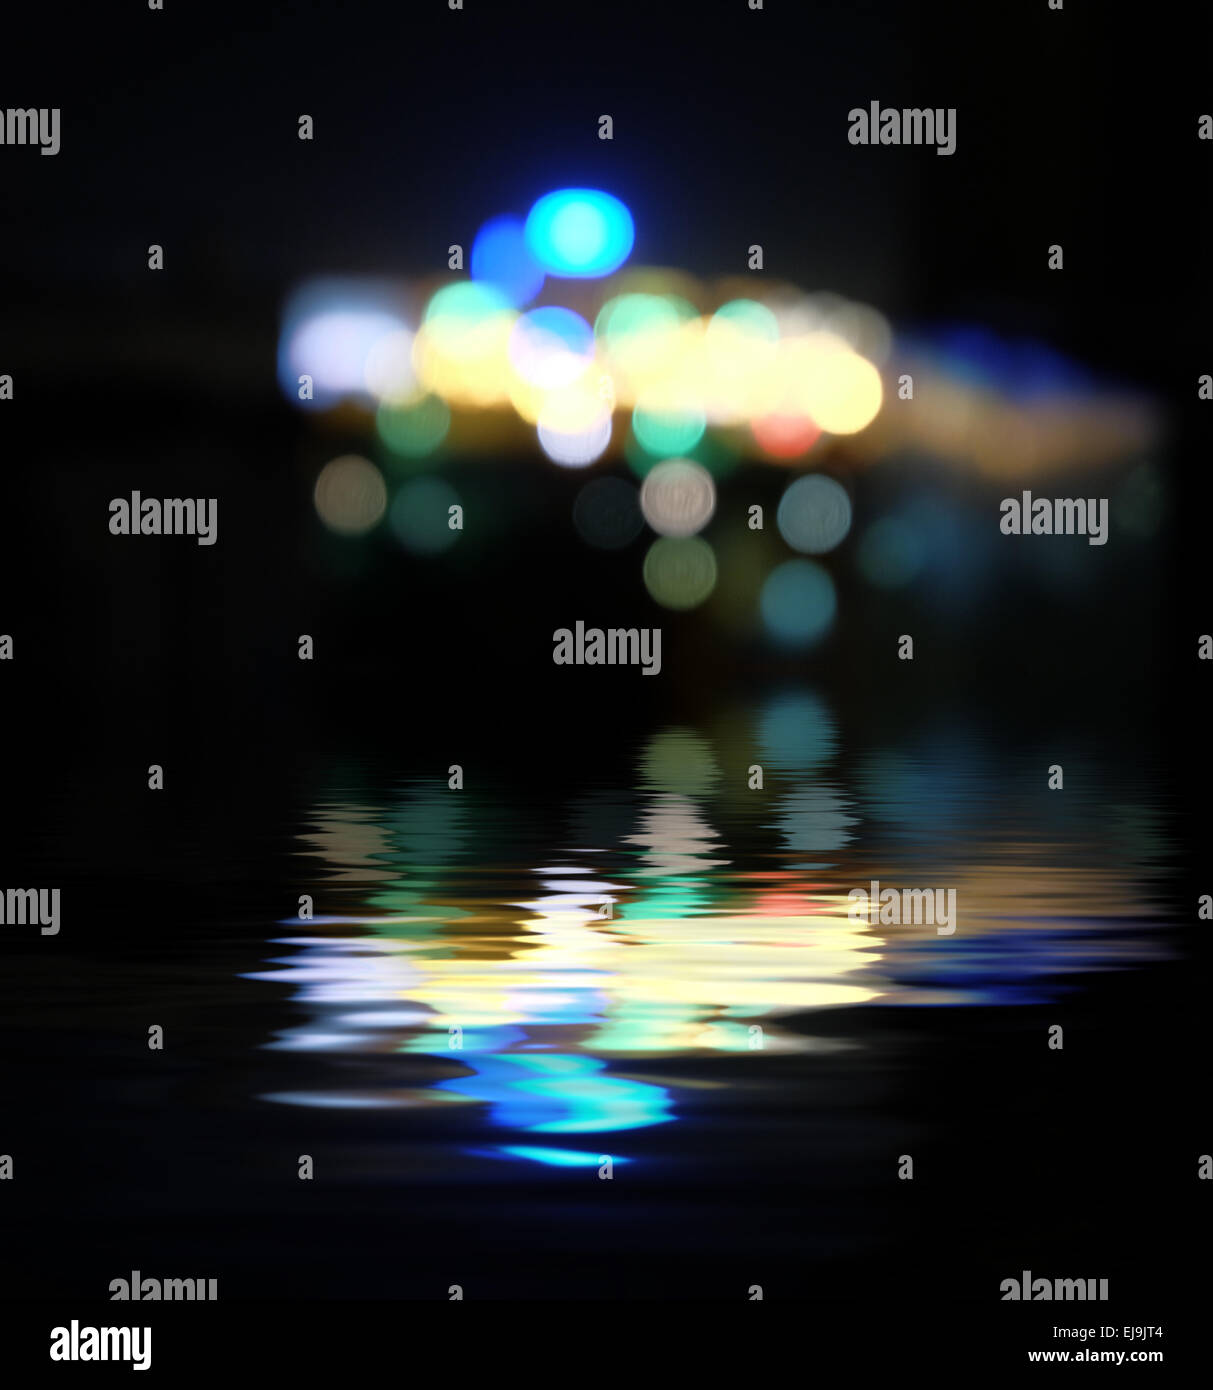 Blurred city at night, bokeh background. - Stock Image